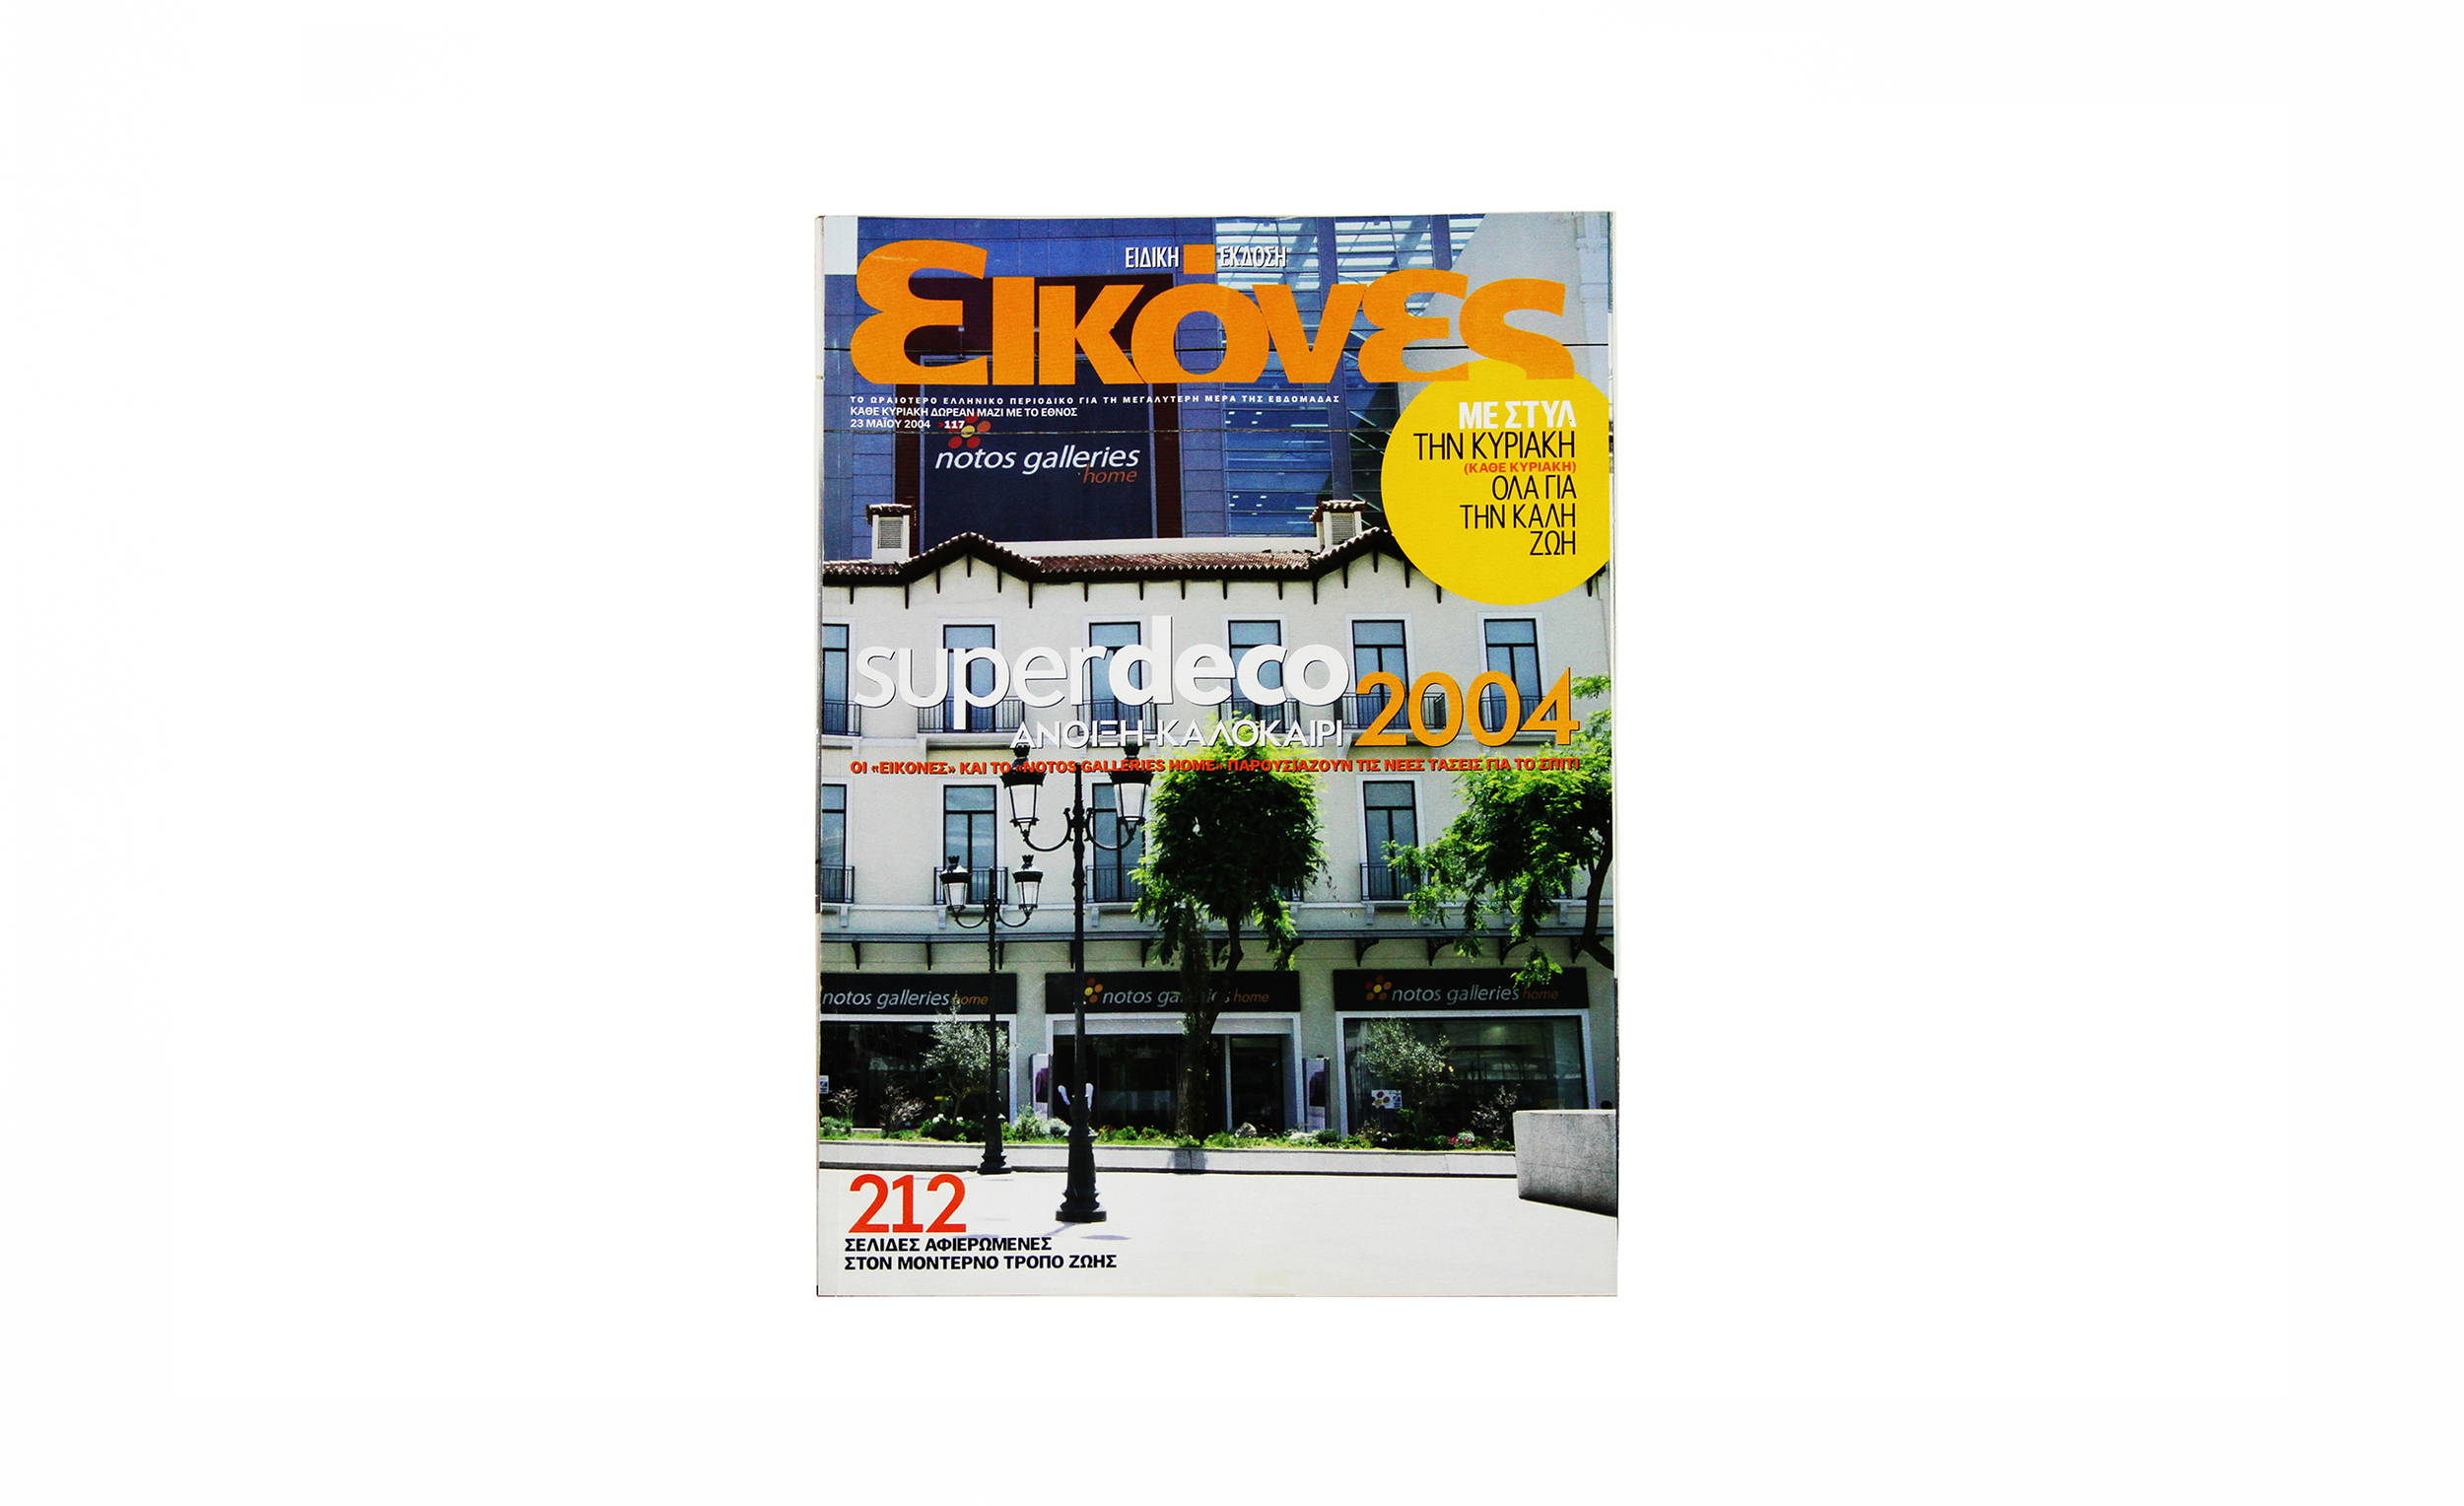 MP_PRESS_ELKOVES_COVER.jpg